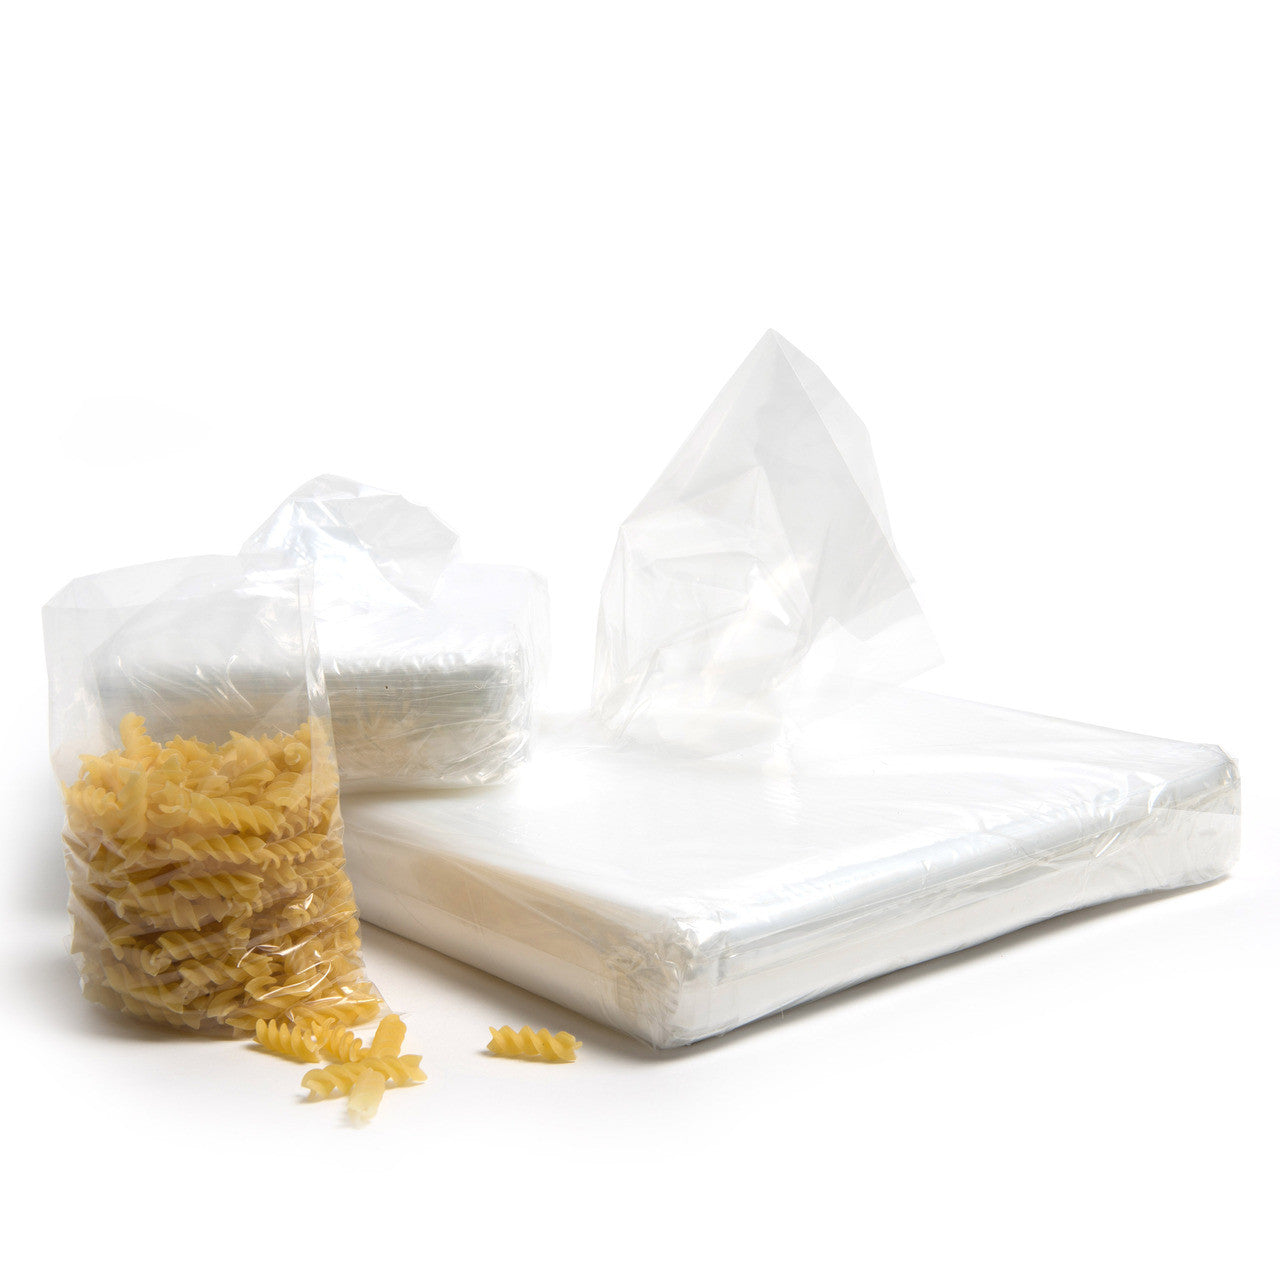 500g clear polythene bags